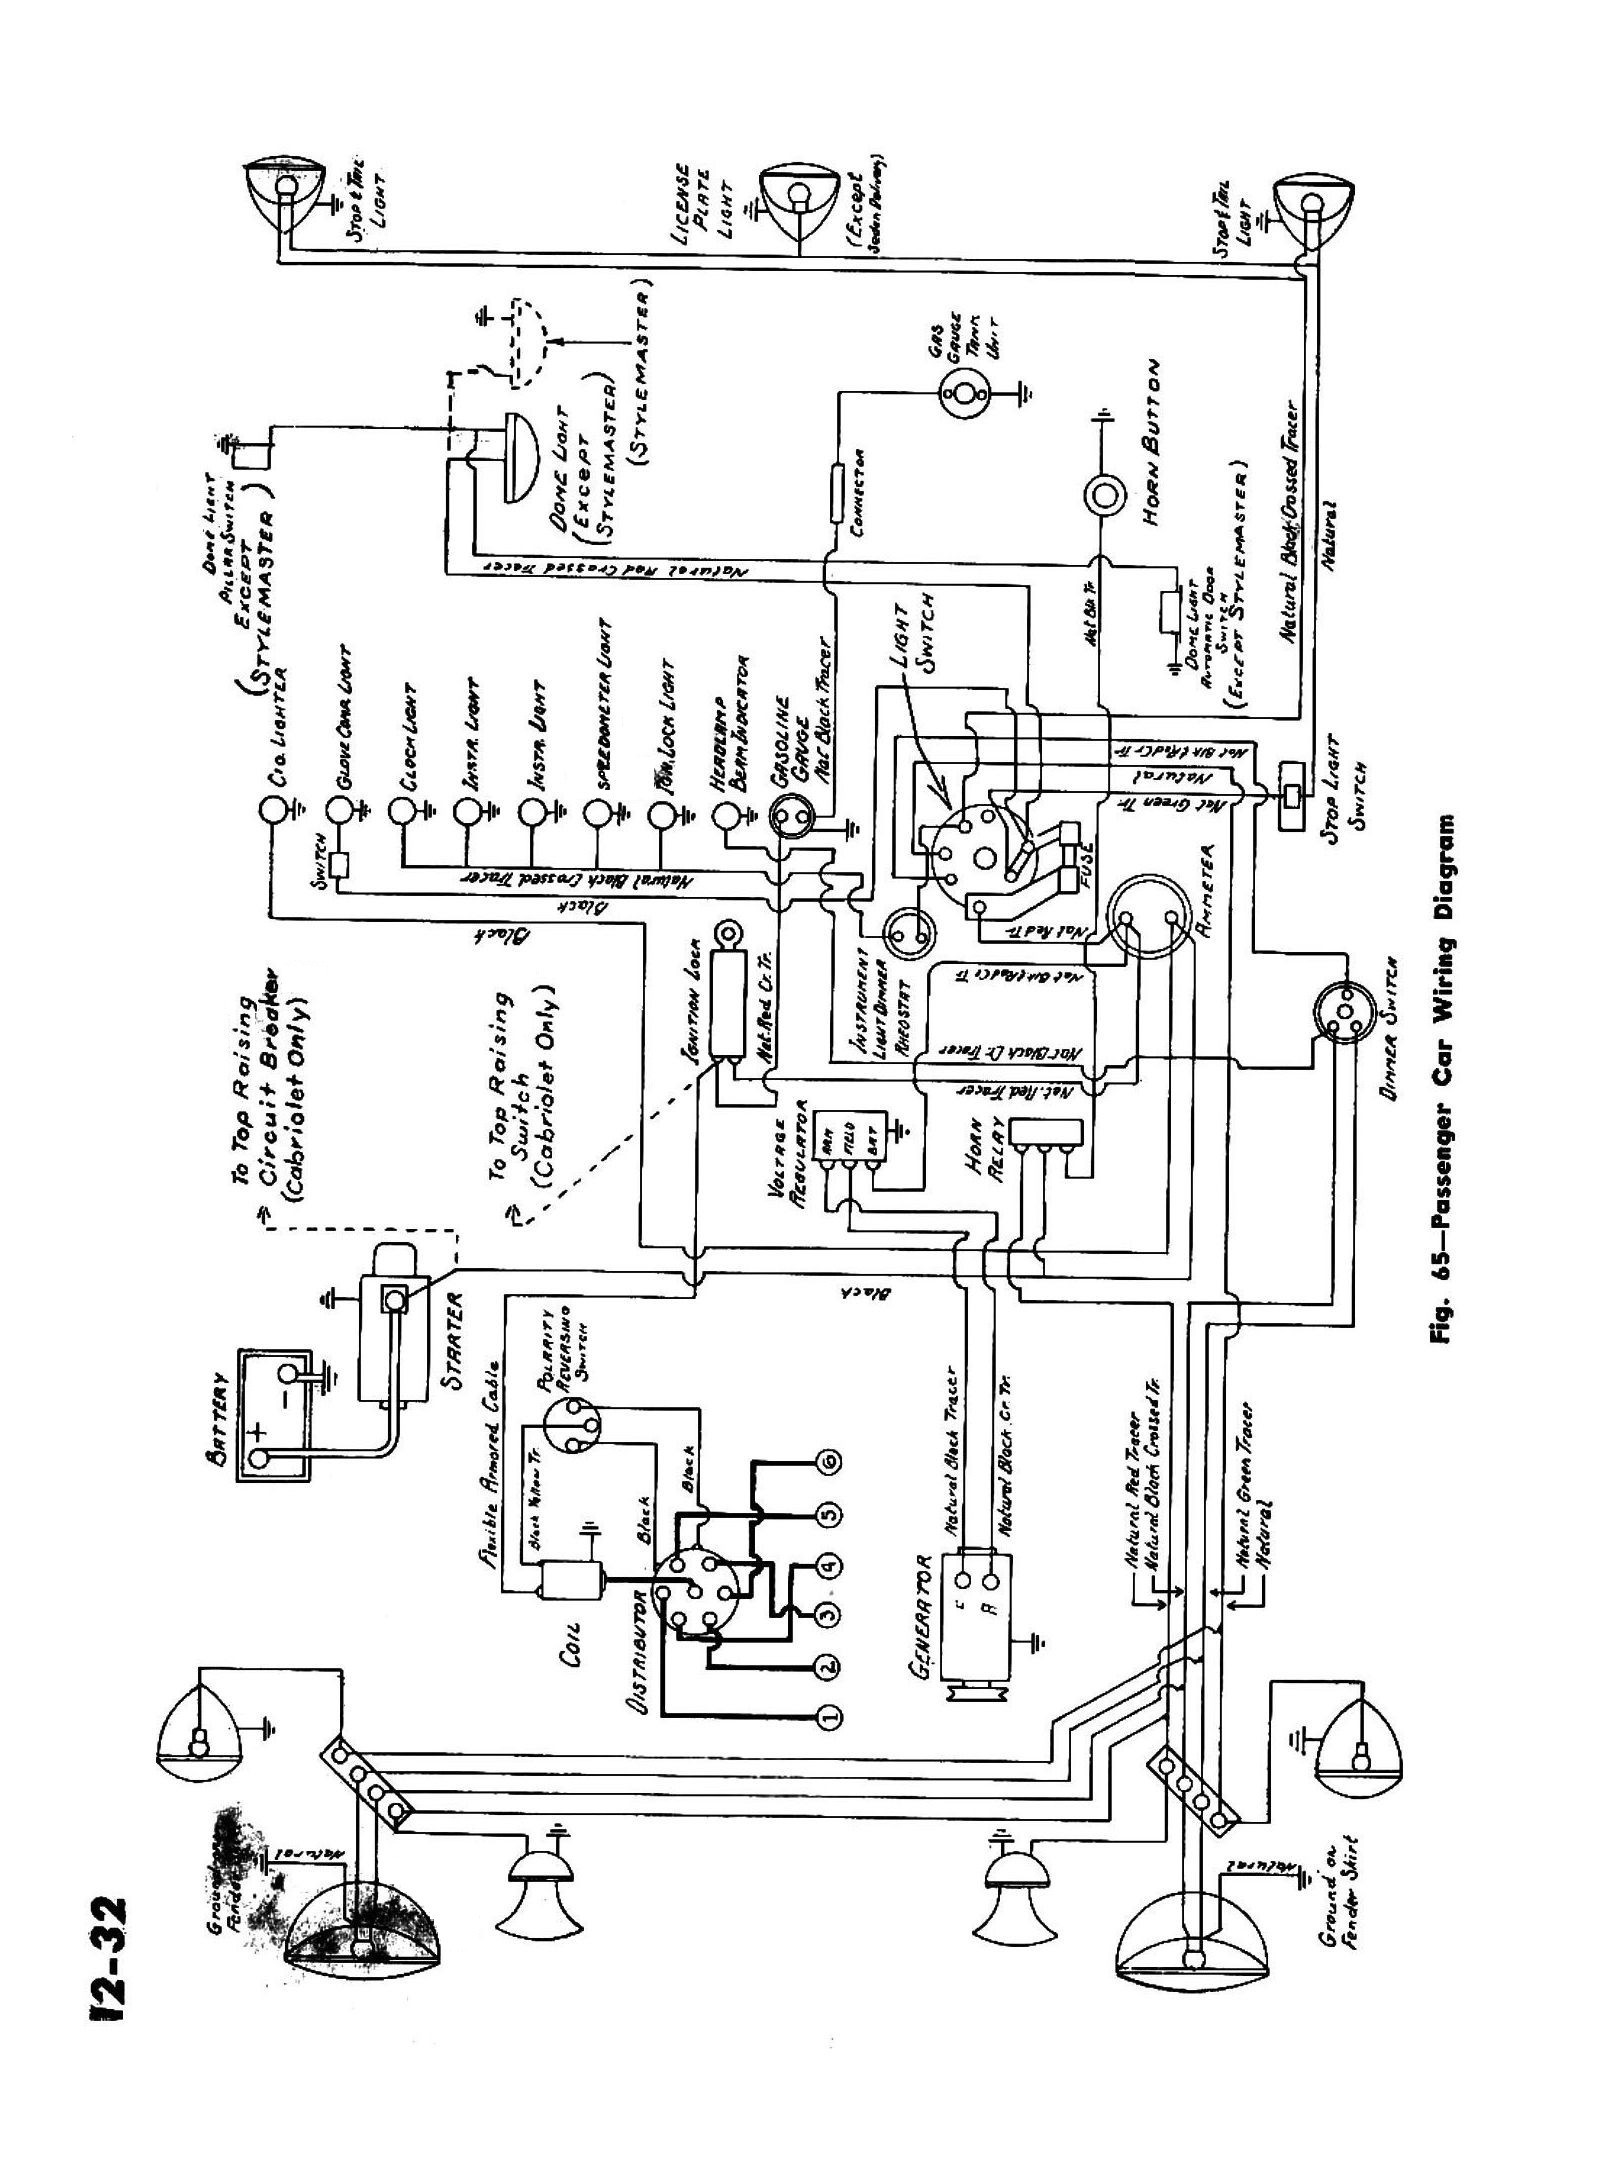 classic car wiring diagrams car wiring diagrams carburetor get free rh detoxicrecenze com